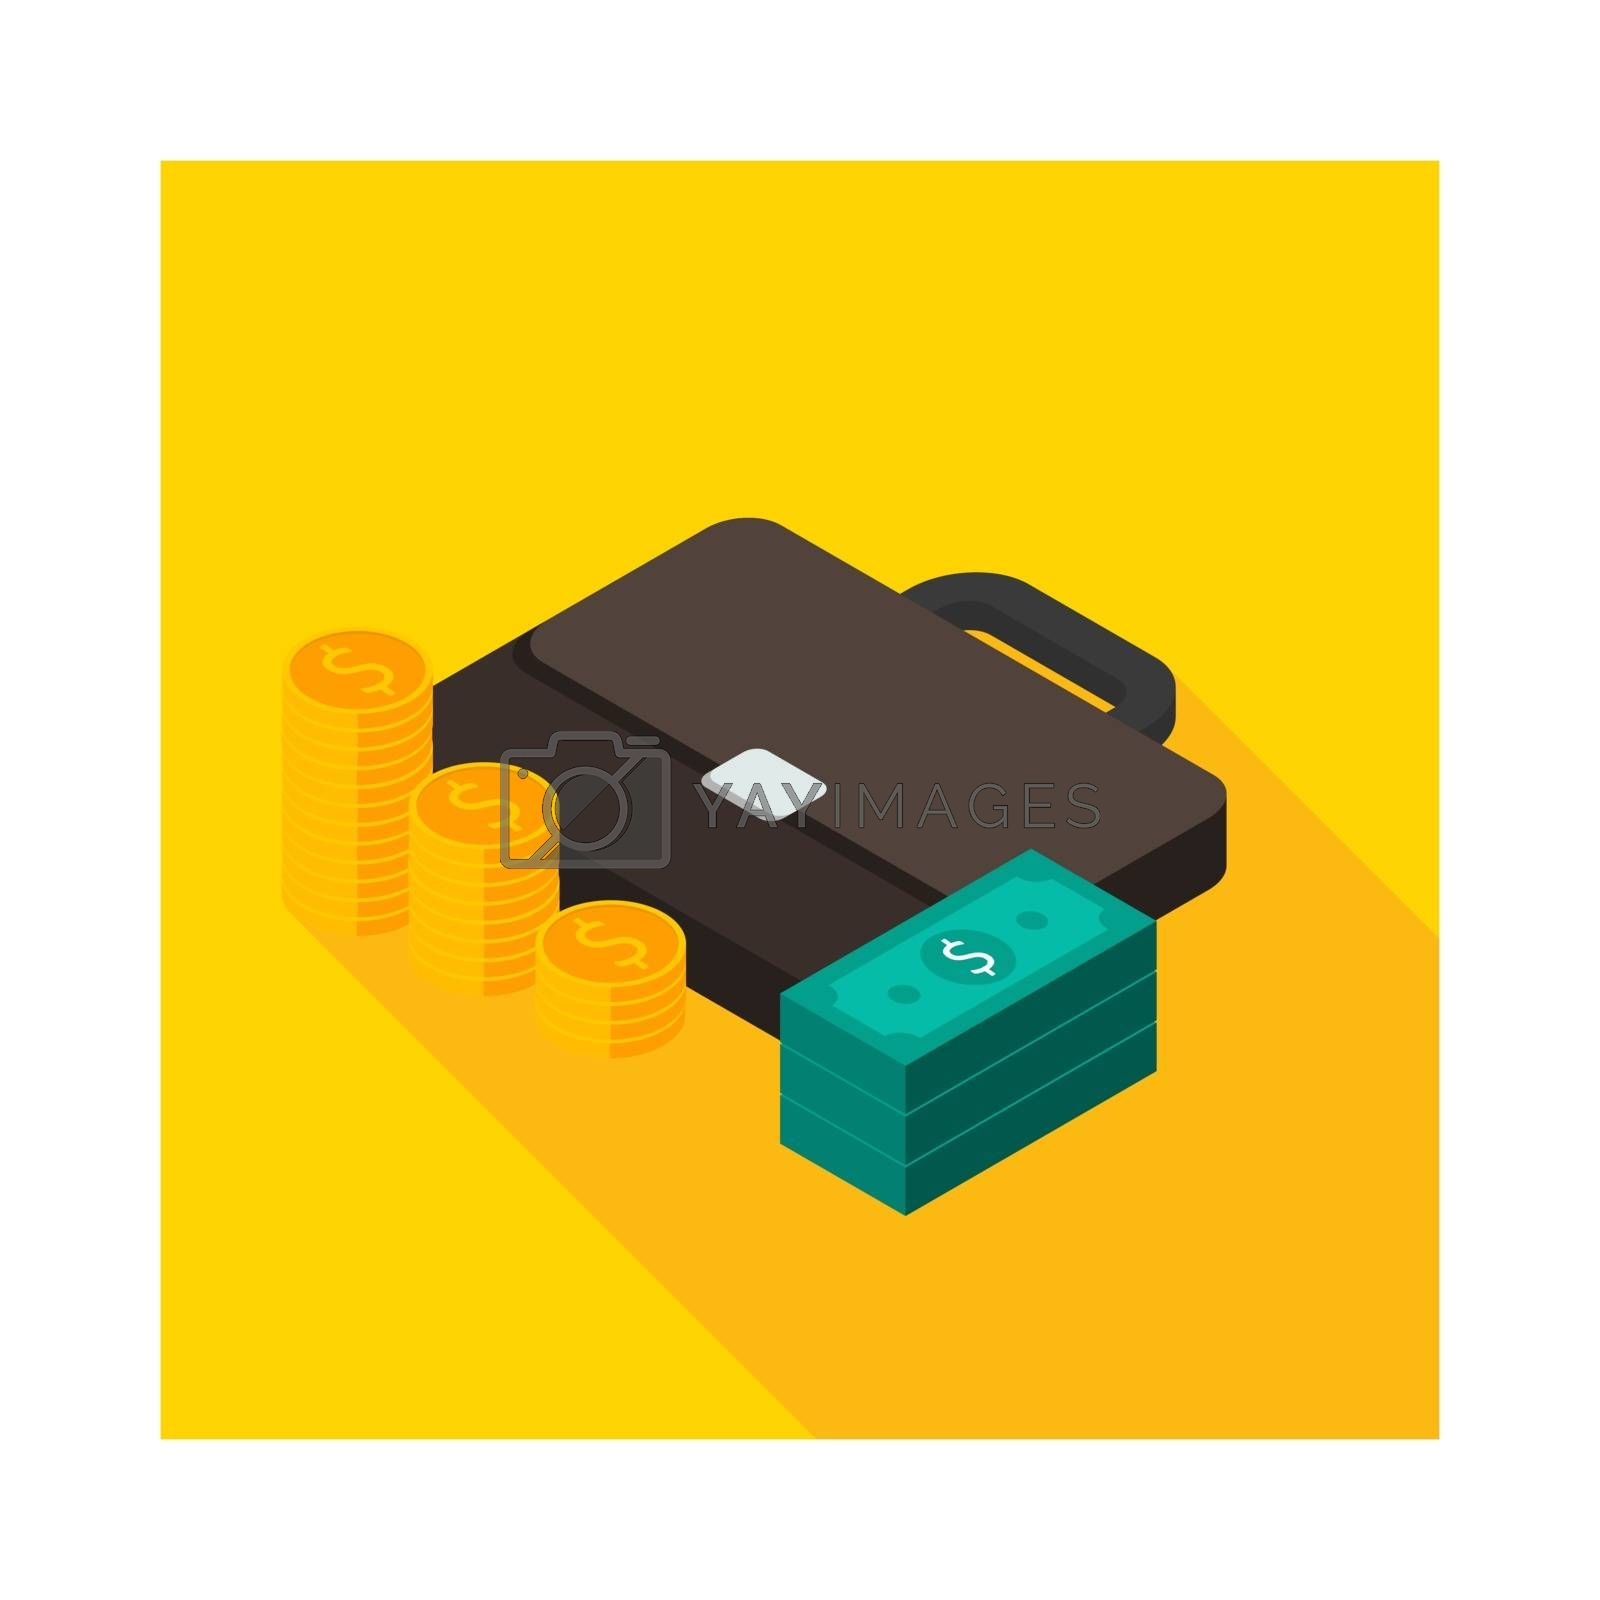 Briefcase, Dollar money cash icon, Gold coin stack left view icon vector isometric. Flat style vector illustration.